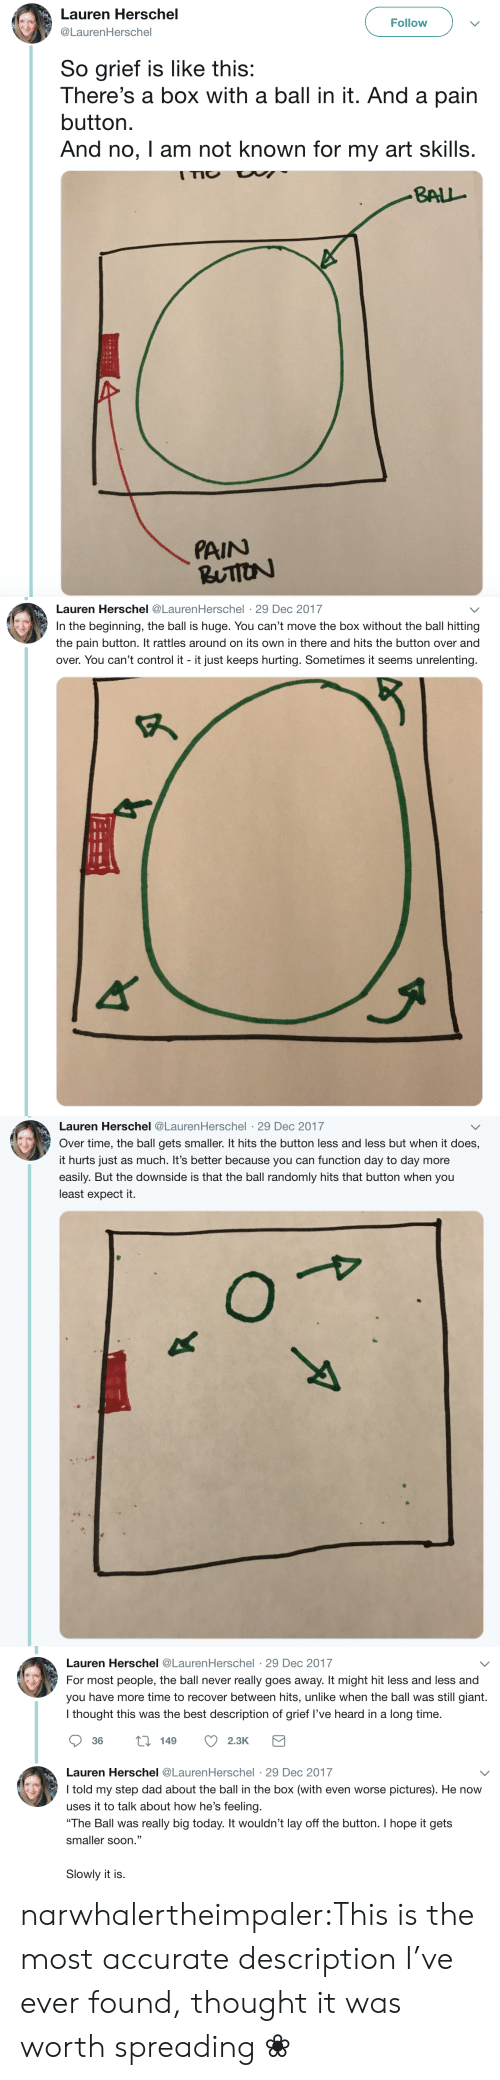 """Dad, Soon..., and Tumblr: Lauren Herschel  Follow  @LaurenHerschel  So grief is like this:  There's a box with a ball in it. And a pain  button  And no, I am not known for my art skills.  ITIO  BALL  PAIN  RUTION   Lauren Herschel @LaurenHerschel 29 Dec 2017  In the beginning, the ball is huge. You can't move the box without the ball hitting  the pain button. It rattles around on its own in there and hits the button over and  over. You can't control it it just keeps hurting. Sometimes it seems unrelenting   Lauren Herschel @LaurenHerschel 29 Dec 2017  .  Over time, the ball gets smaller. It hits the button less and less but when it does,  it hurts just as much. It's better because you can function day to day more  easily. But the downside is that the ball randomly hits that button when you  least expect it.  O   Lauren Herschel @LaurenHerschel 29 Dec 2017  For most people, the ball never really goes away. It might hit less and less and  you have more time to recover between hits, unlike when the ball was still giant.  I thought this was the best description of grief I've heard in a long time.  t149  36  2.3K  Lauren Herschel @LaurenHerschel 29 Dec 2017  .  I told my step dad about the ball in the box (with even worse pictures). He now  uses it to talk about how he's feeling.  """"The Ball was really big today. It wouldn't lay off the button. I hope it gets  smaller soon.""""  Slowly it is. narwhalertheimpaler:This is the most accurate description I've ever found, thought it was worth spreading ❀"""